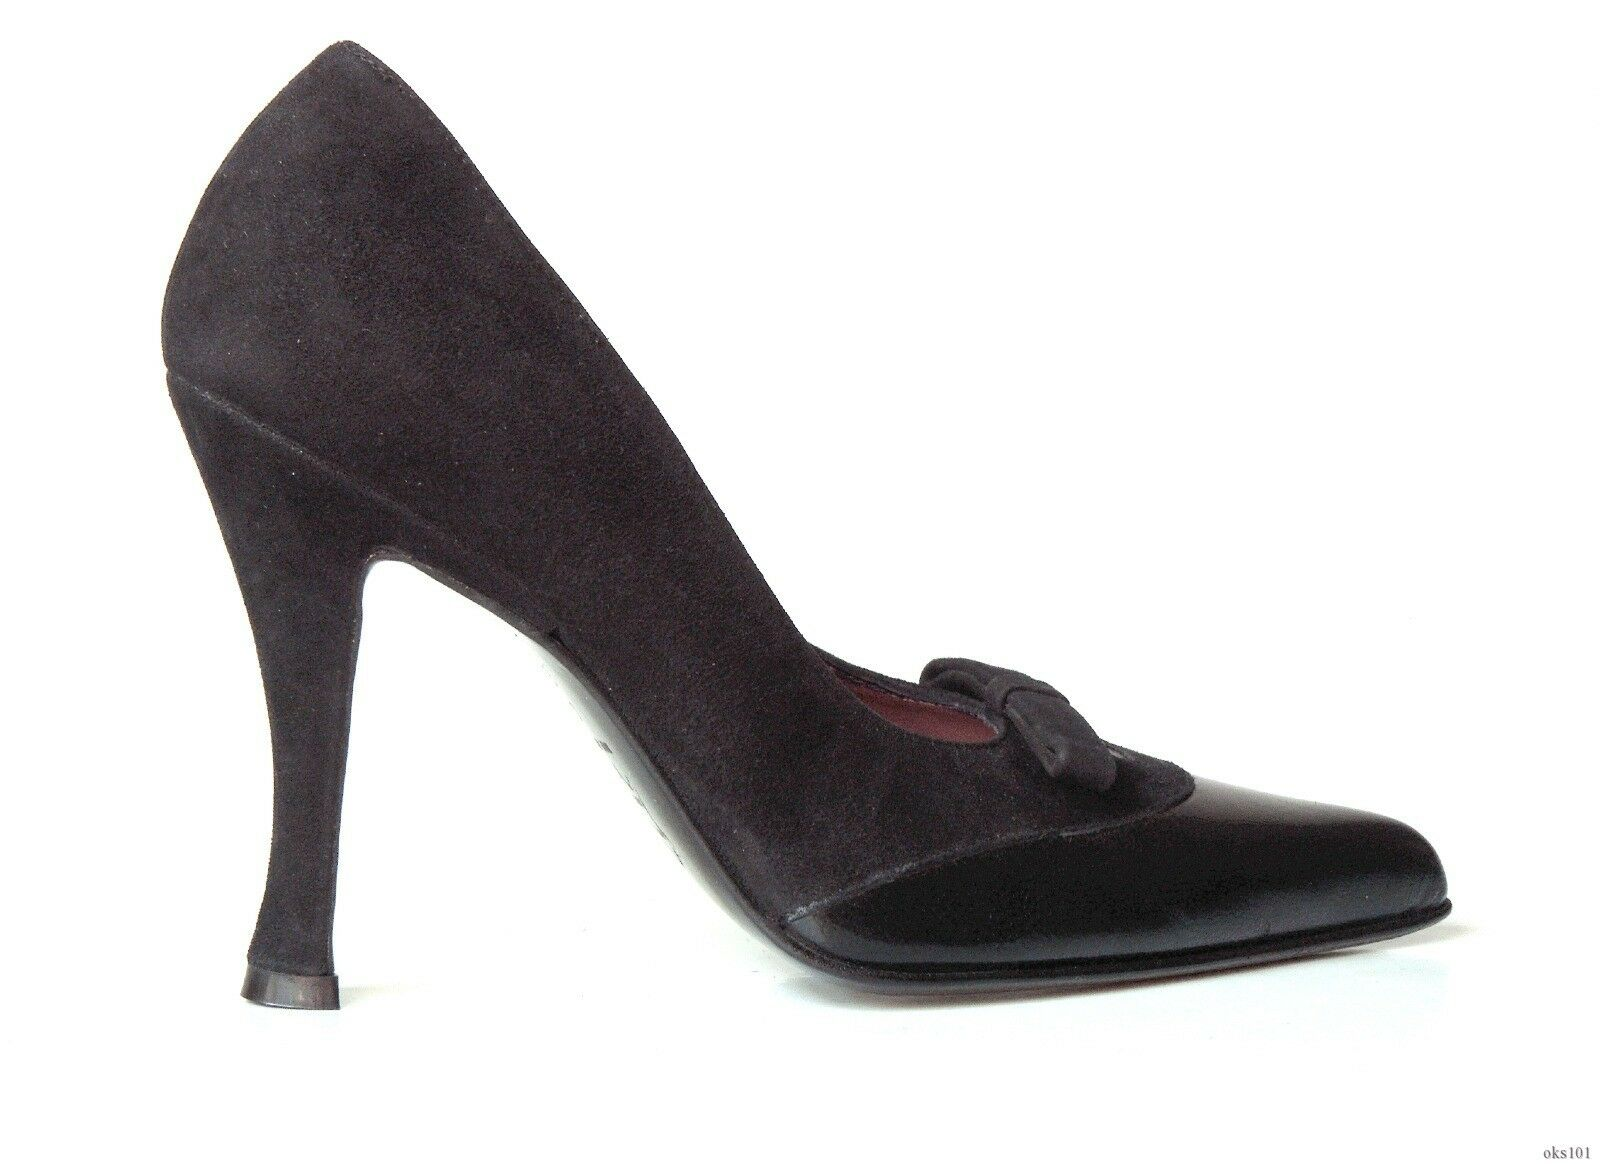 new Versani 9502 black suede/leather pointy toe PUMPS Shoes Italy - sexy